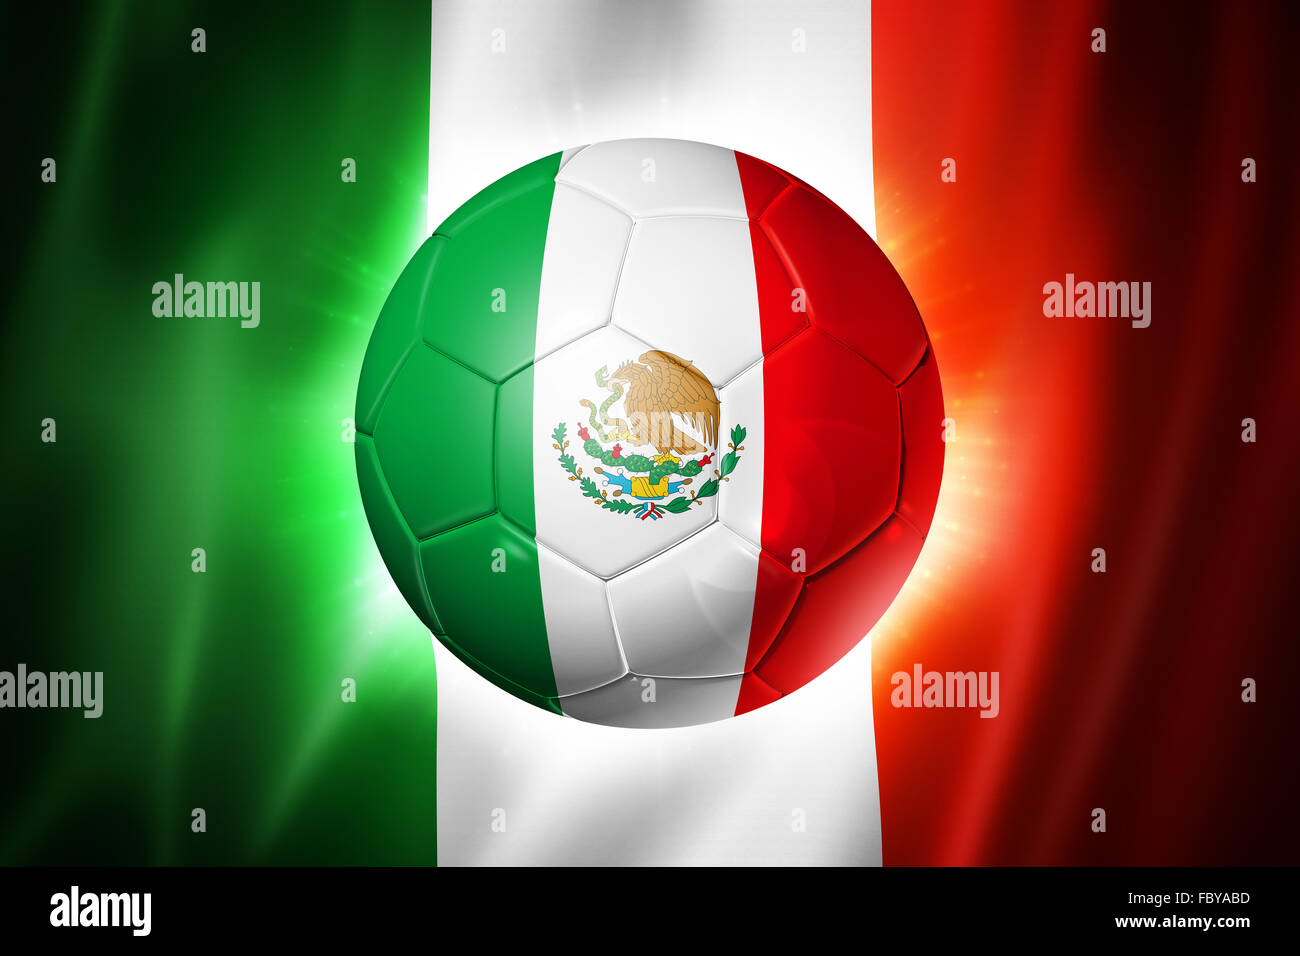 Soccer football ball with Mexico flag - Stock Image